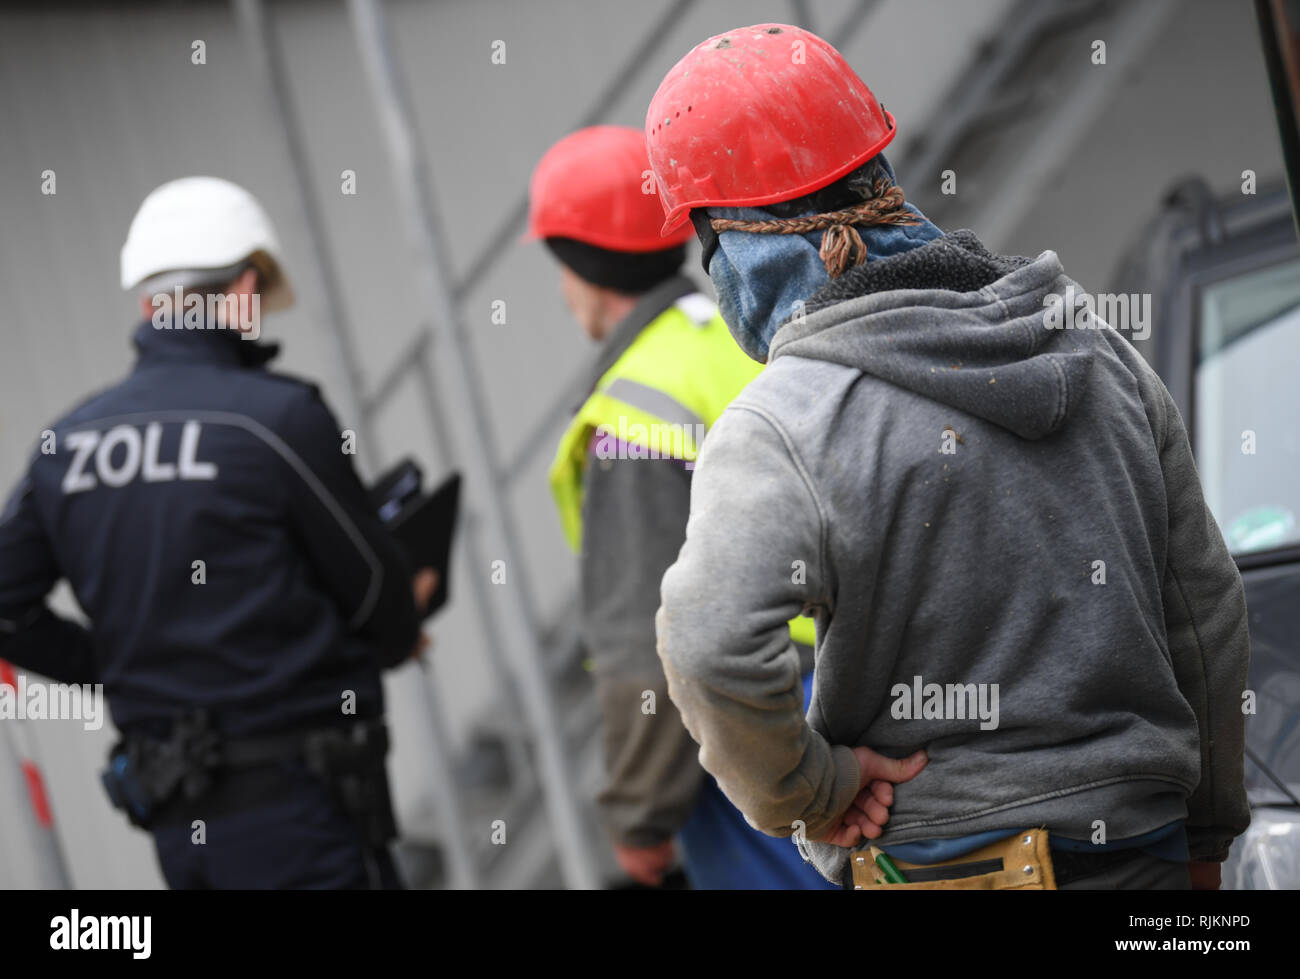 07 February 2019, Hessen, Frankfurt/Main: A customs official checks construction workers during a mission on a large construction site in the Niederrad district. The Special Unit Financial Control of Undeclared Work (FKS) takes action against illegal employment, minimum wage violations and social benefit abuse. Photo: Arne Dedert/dpa Stock Photo